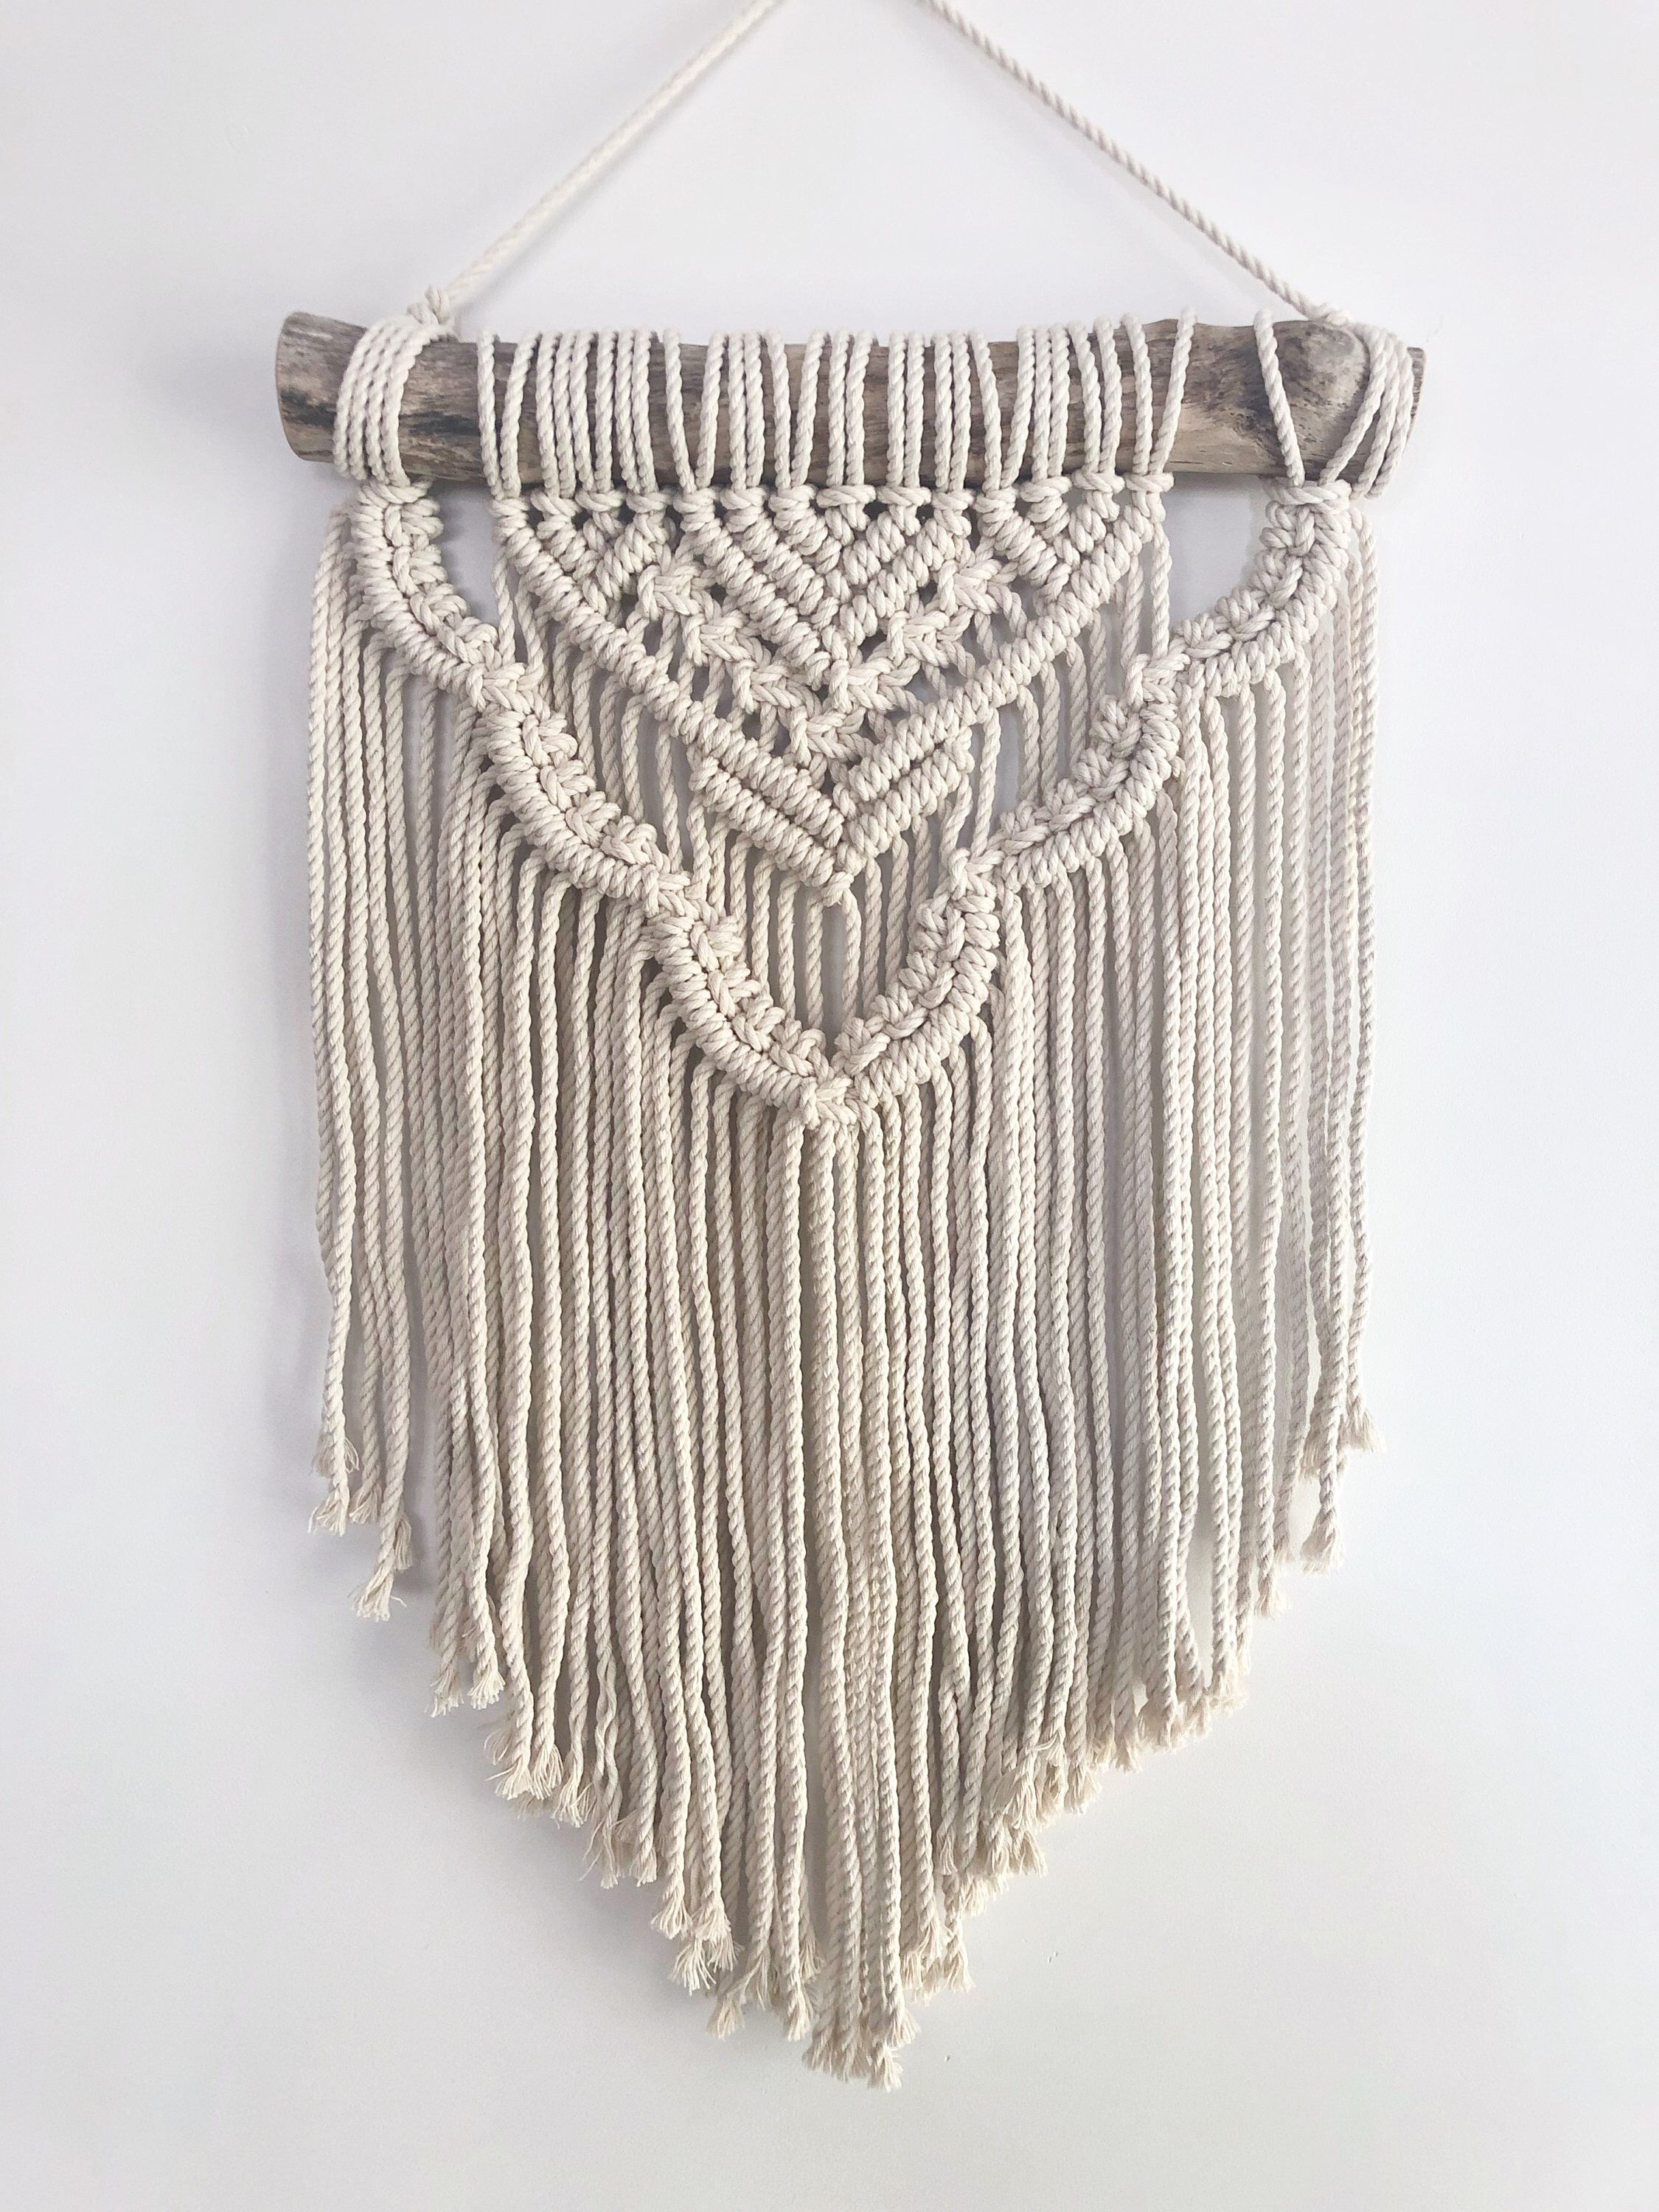 Items similar to Ready to ship | Macrame Wall Hanging | Esther on Etsy